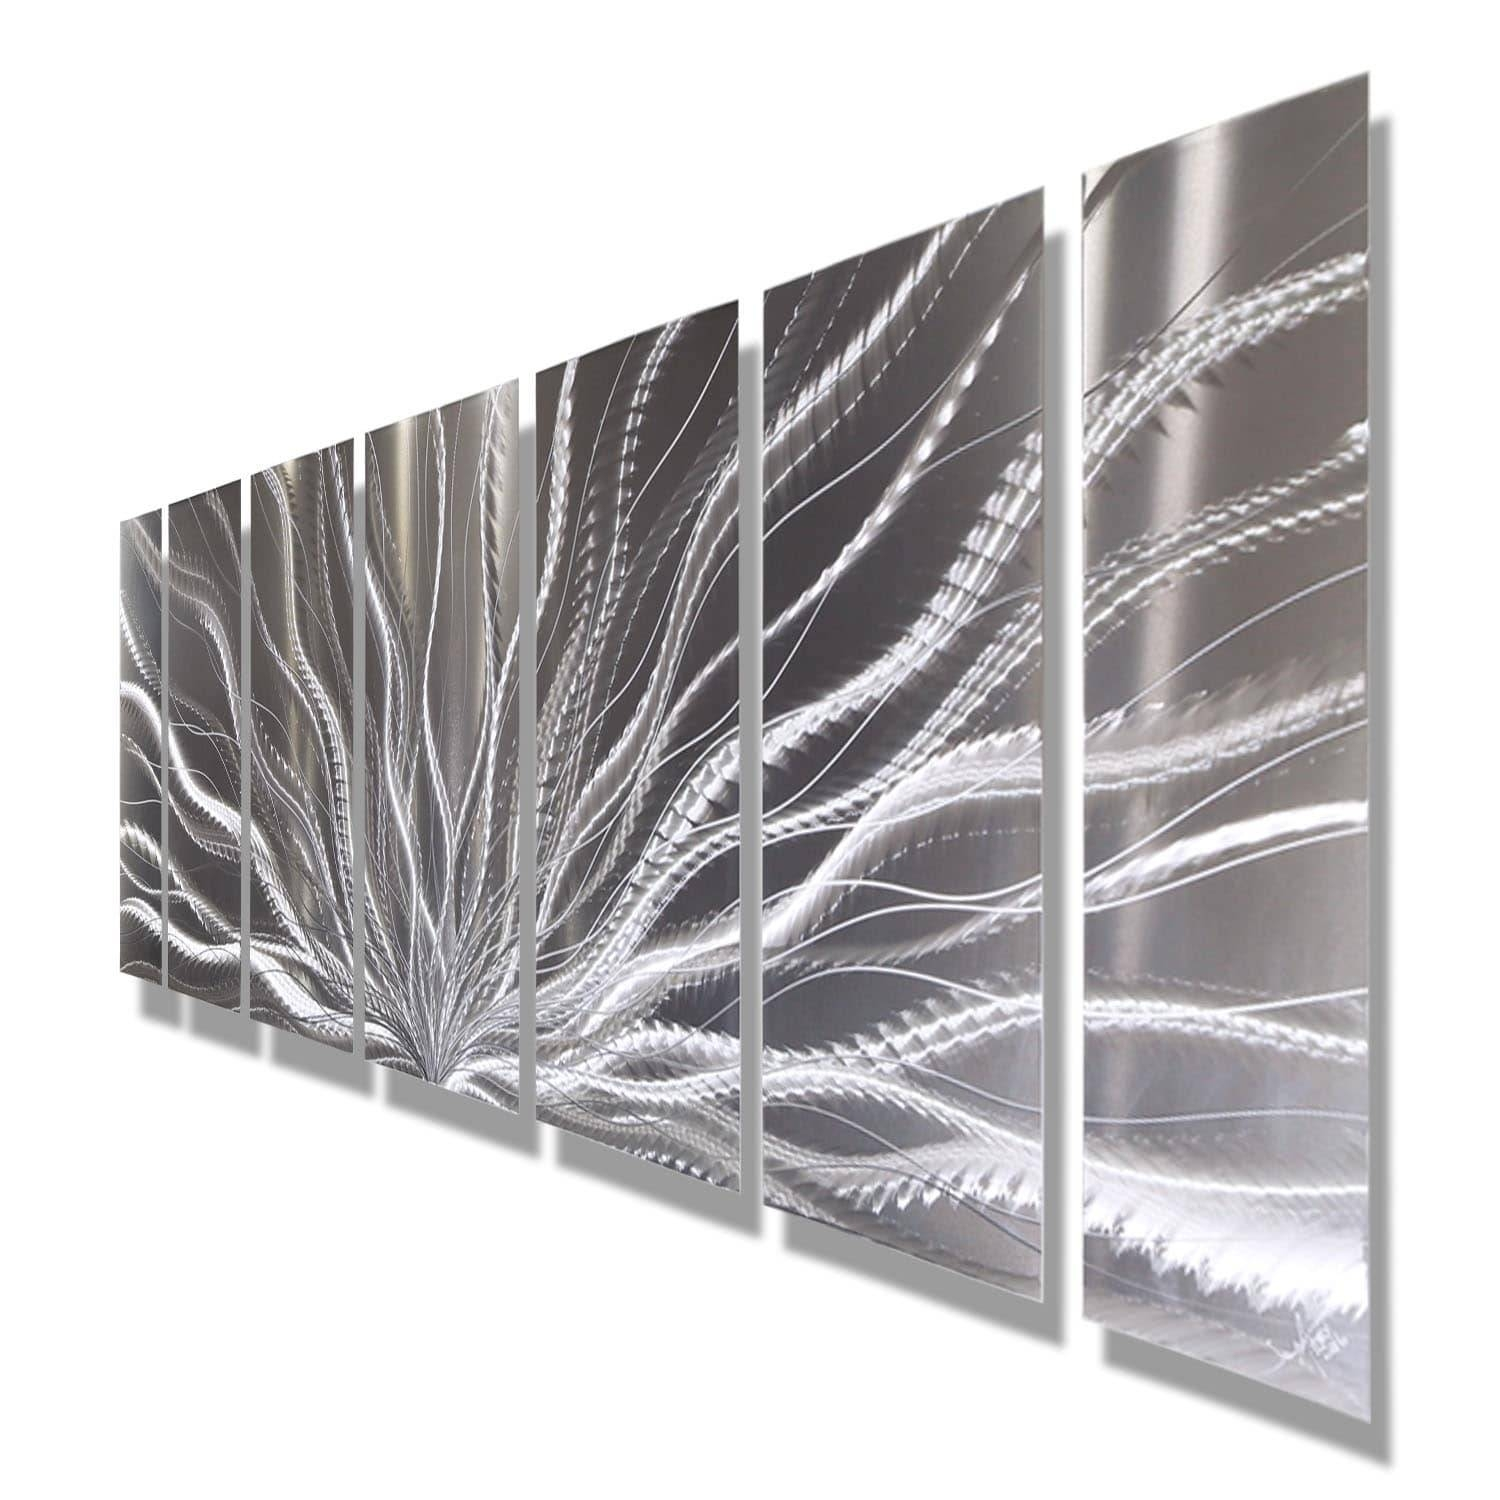 Statements2000 Silver Abstract Etched Metal Wall Art Sculpture Throughout Most Current Etched Metal Wall Art (View 6 of 20)